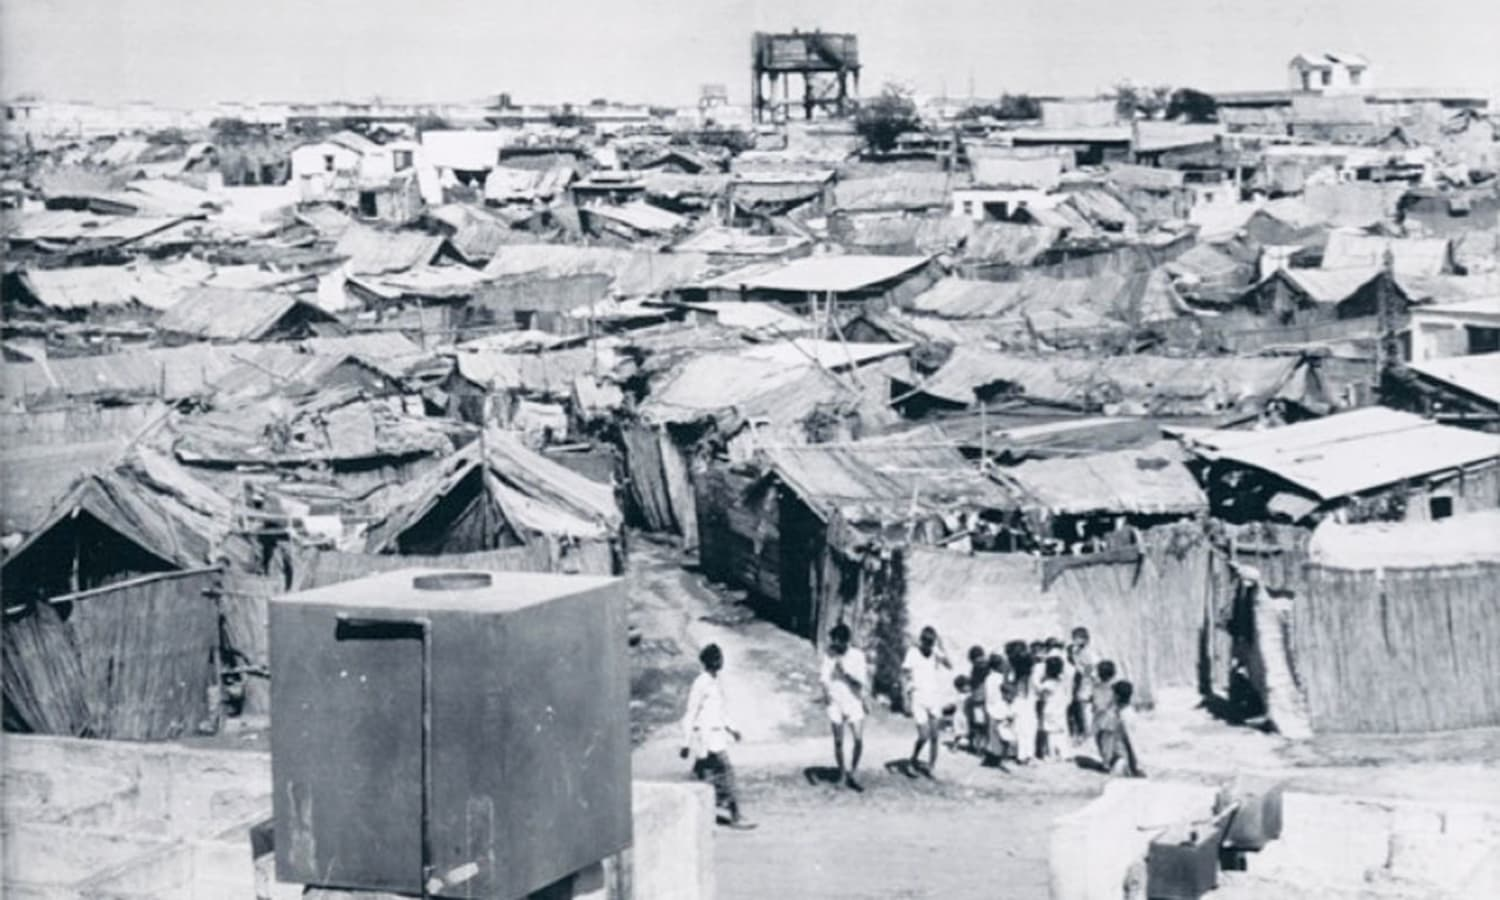 A widespread slum in Karachi in 1968.